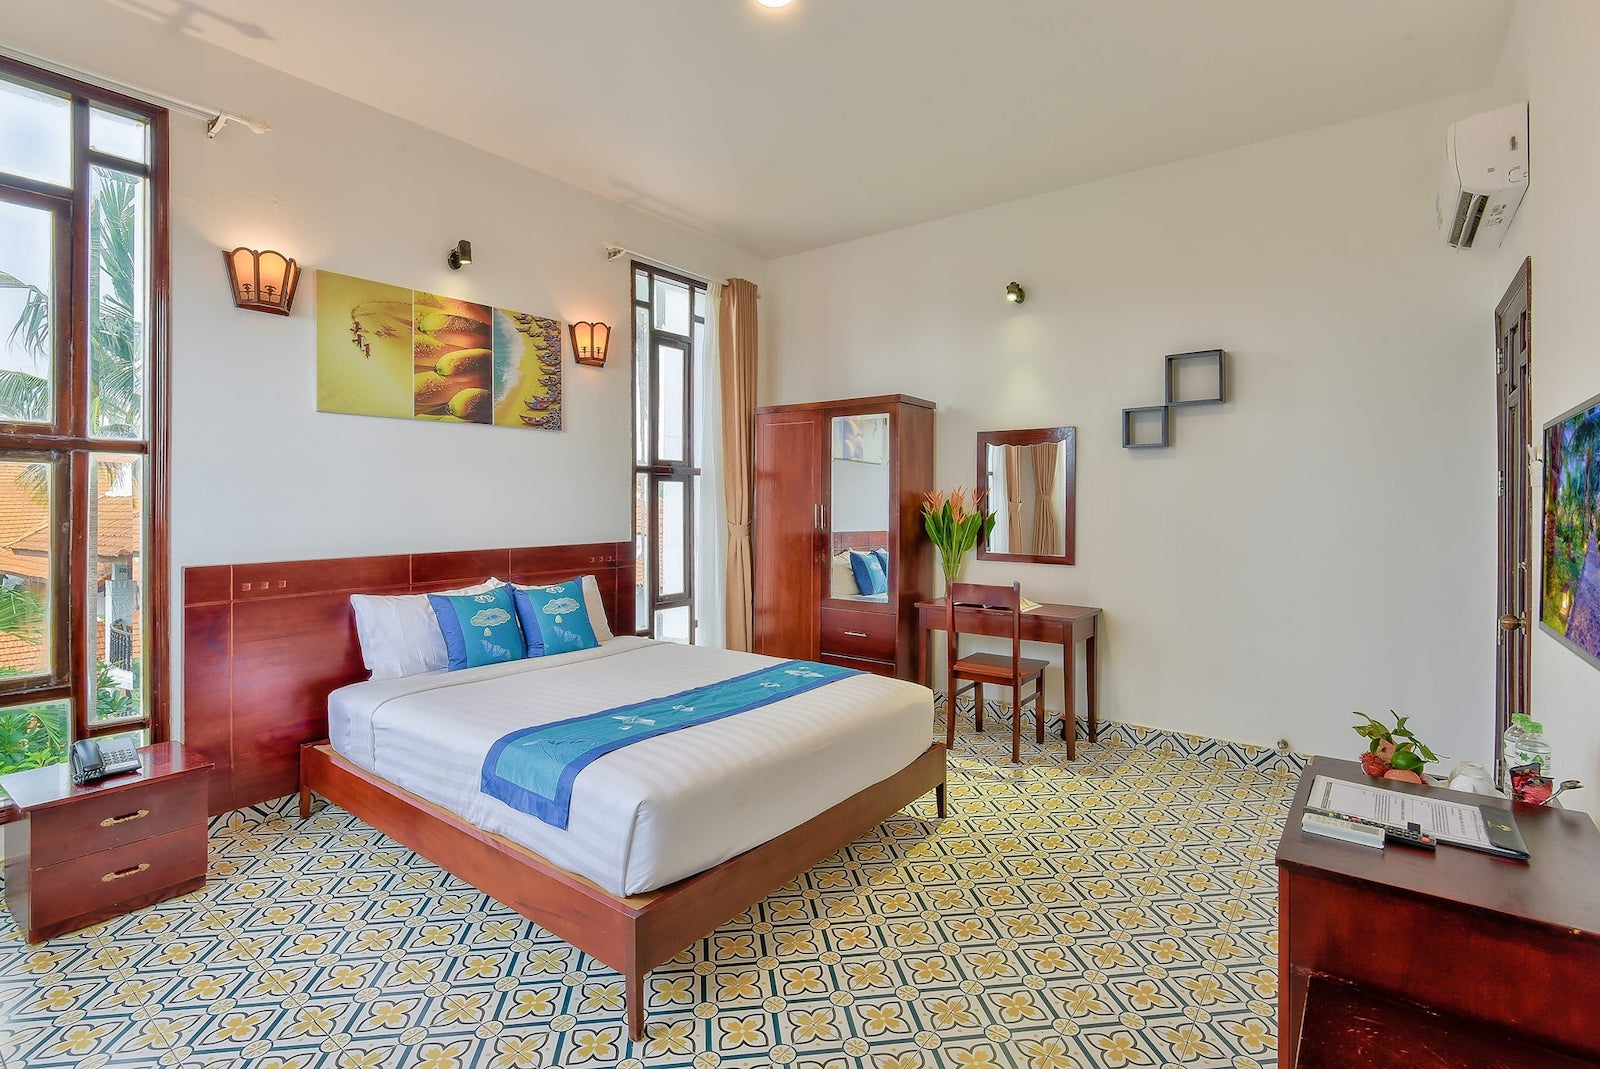 Image of a room at the Ravenala Boutique Resort Mui Ne in Vietnam